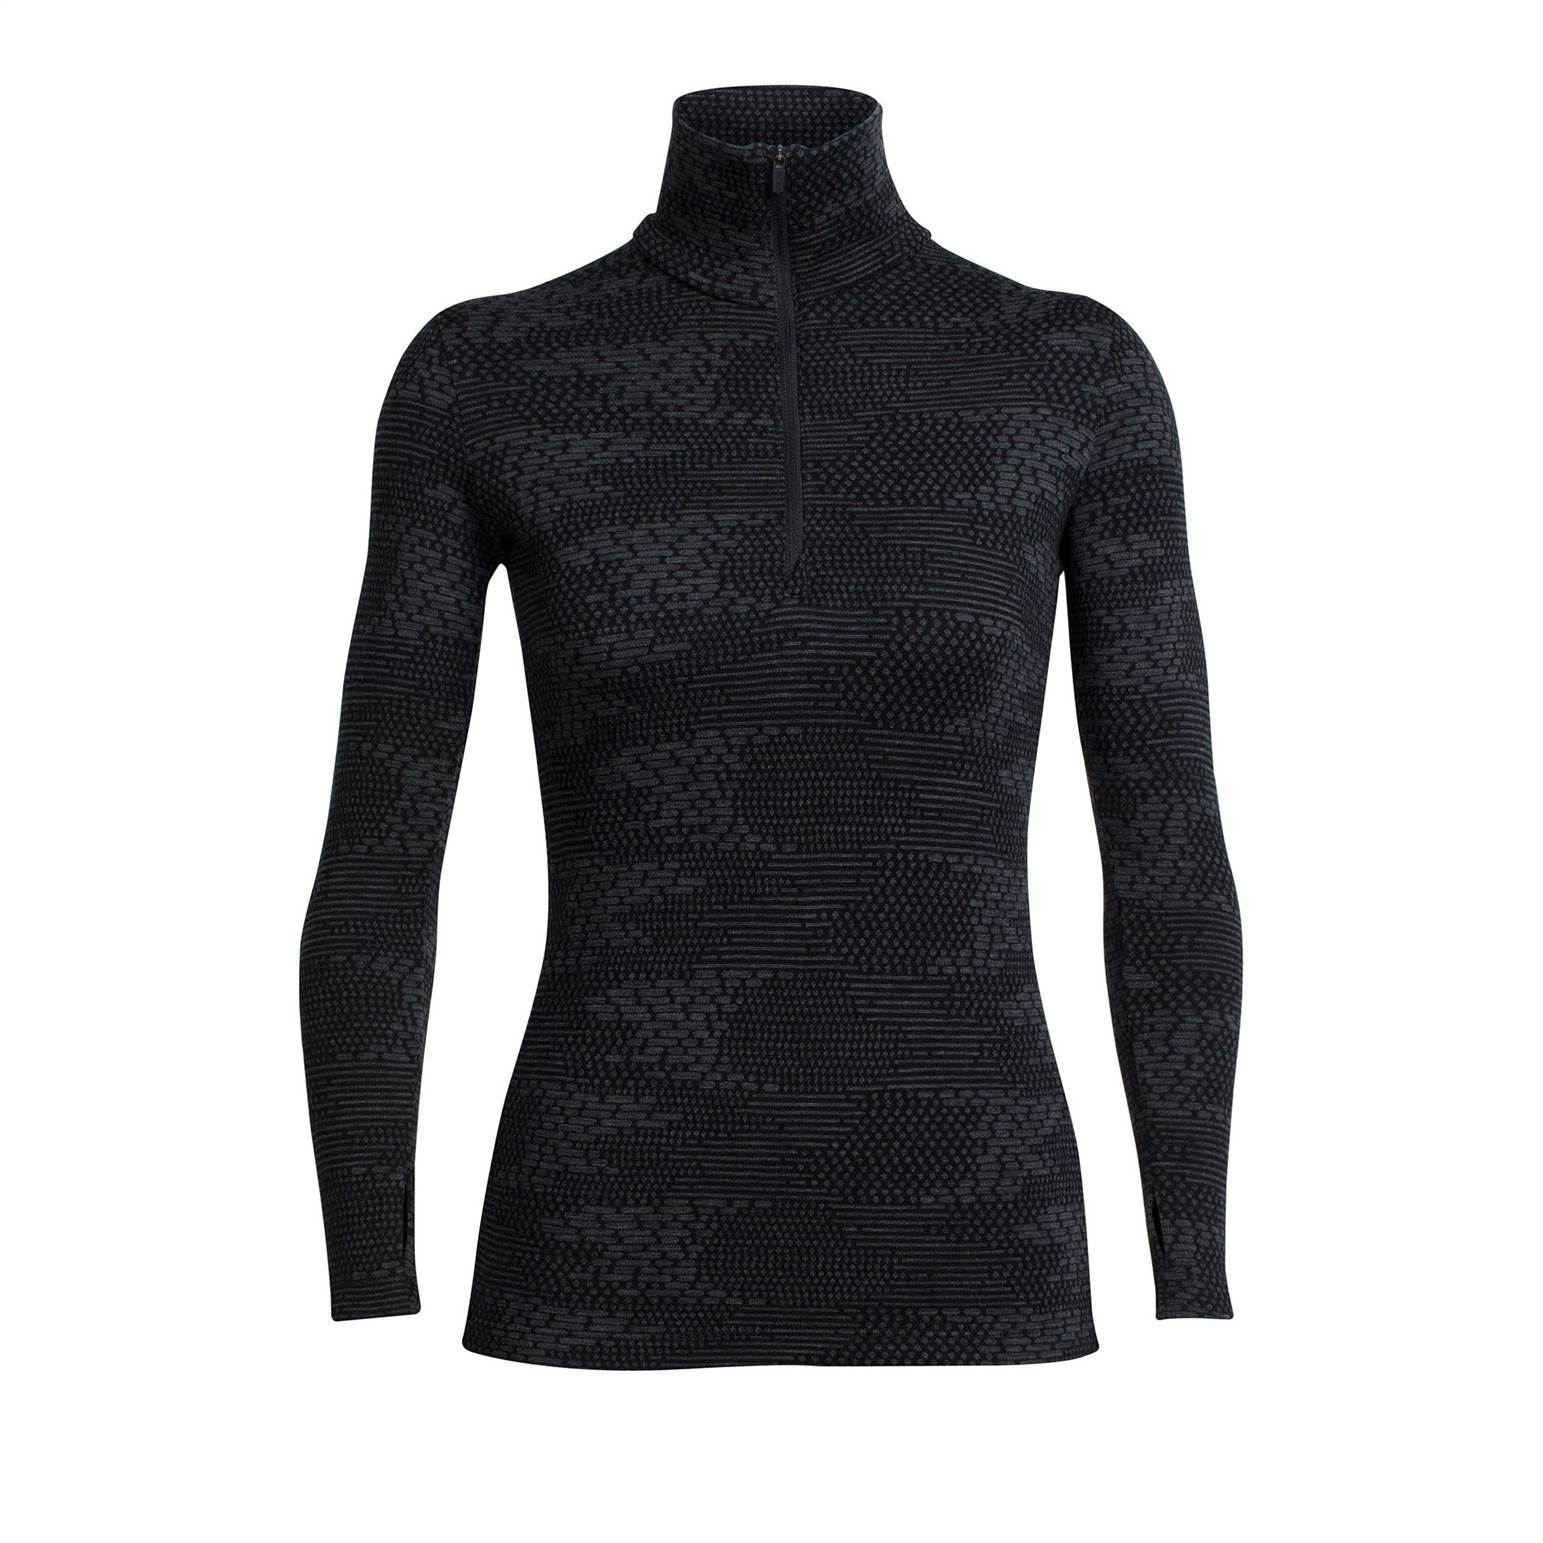 Flurry Vertex LS Half Zip - Women's